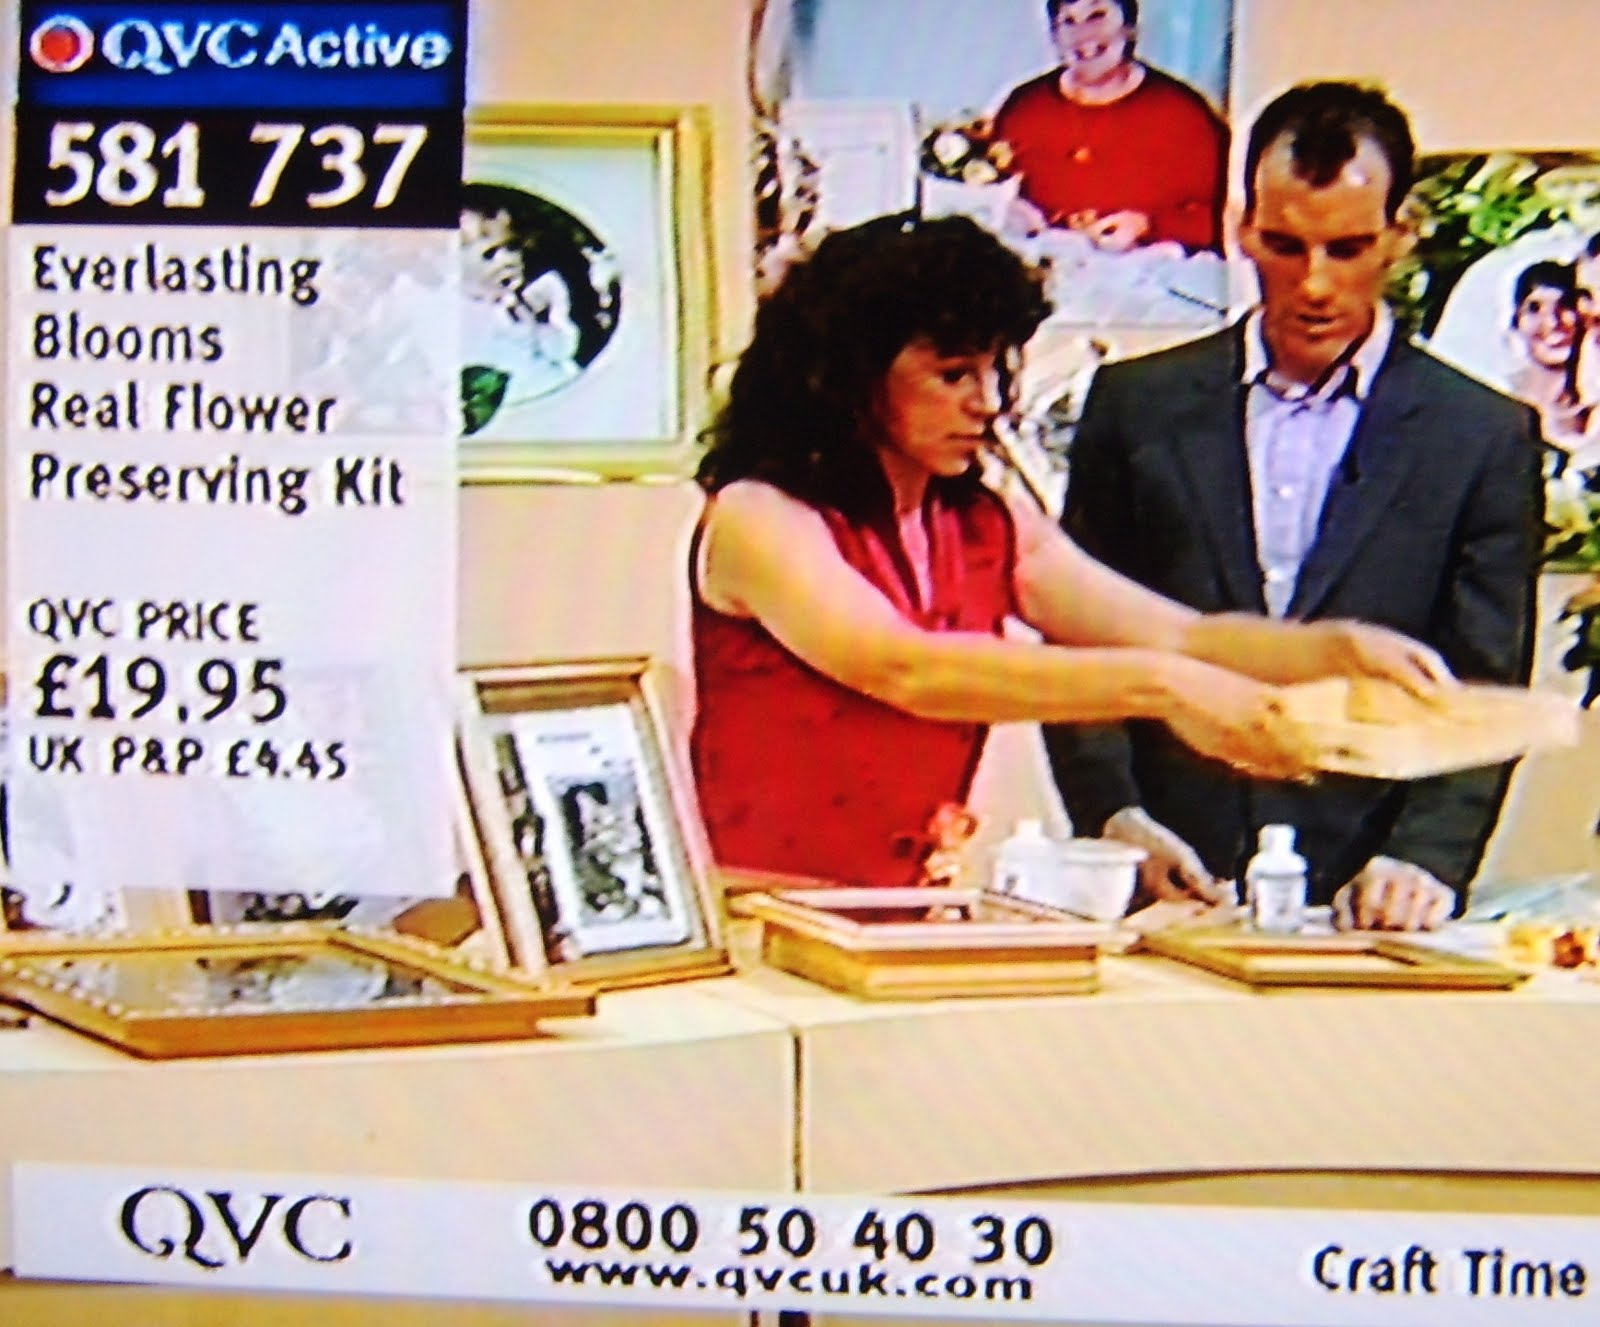 Andrea Webster QVC demonstration of Real Flower Preserve kit on You Tube